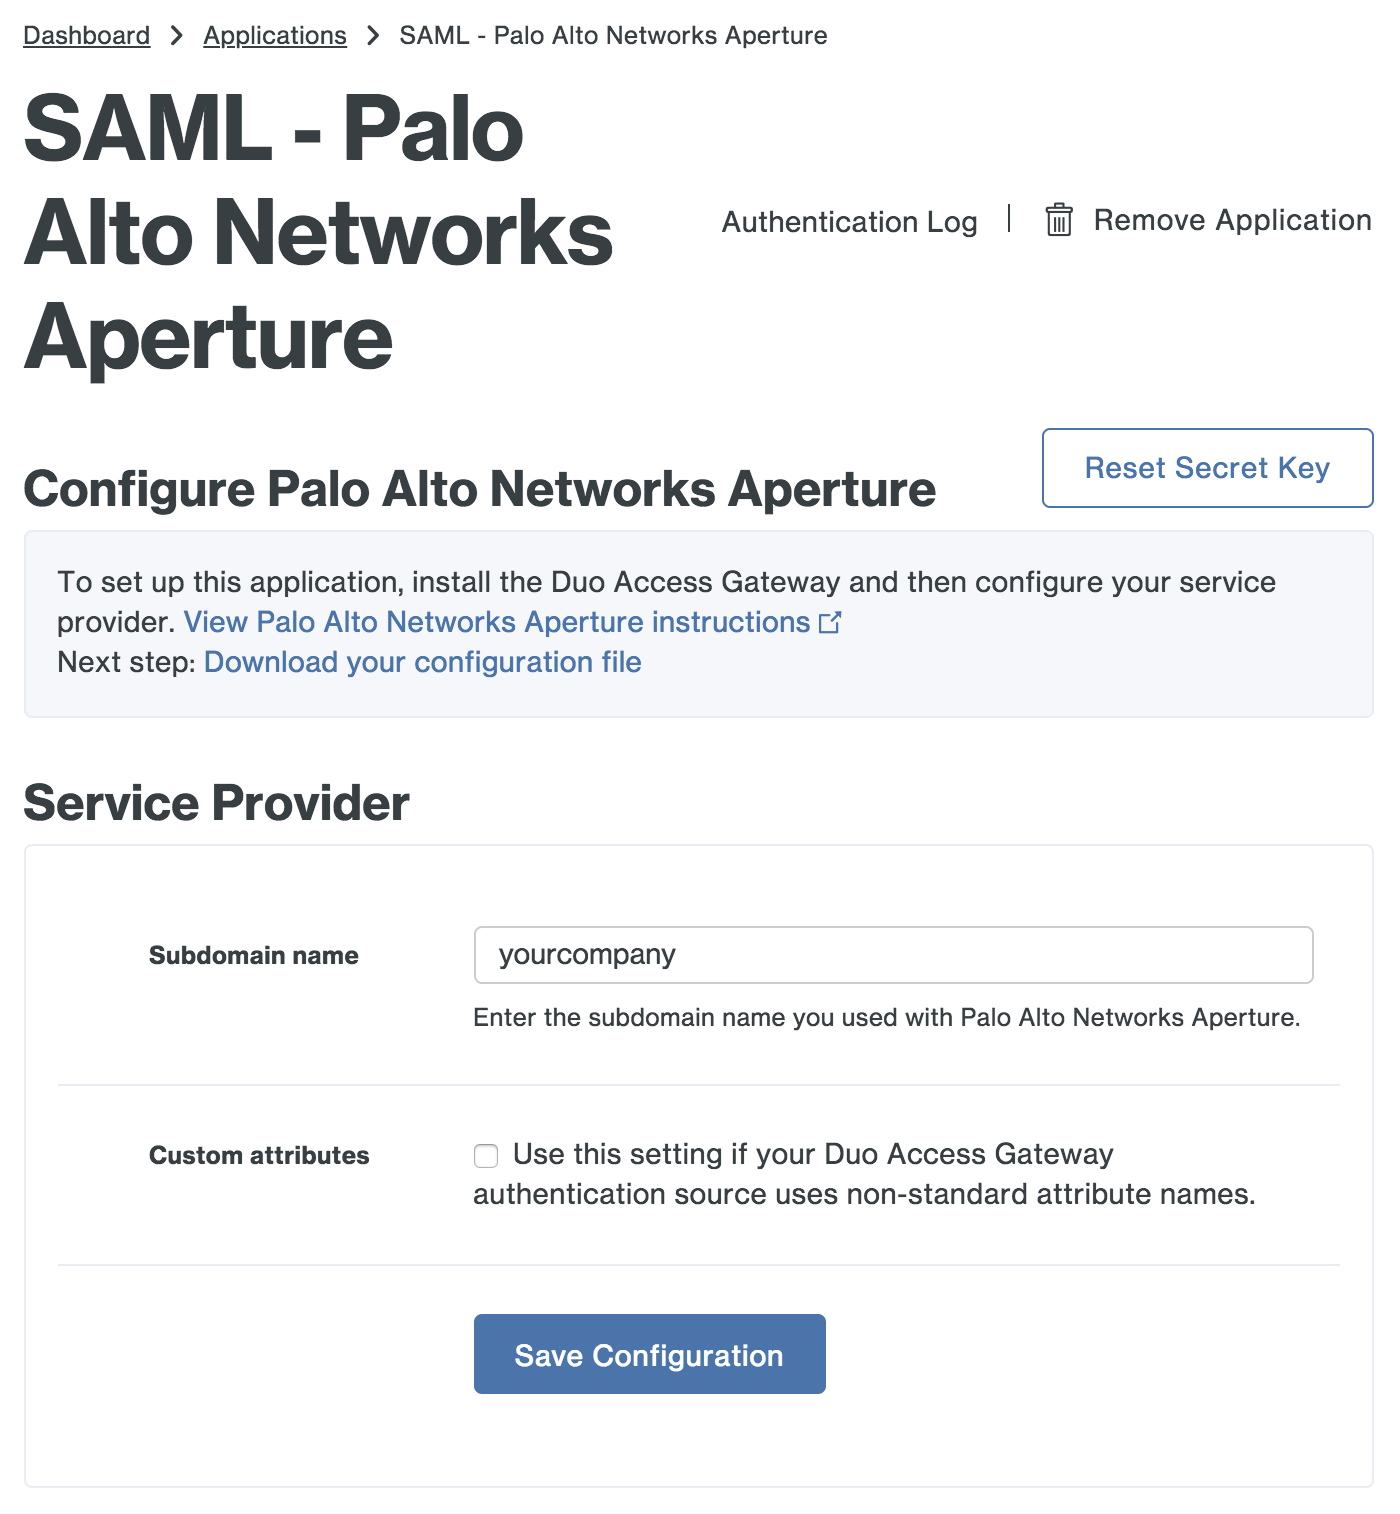 Duo Palo Alto Networks Aperture Application Settings